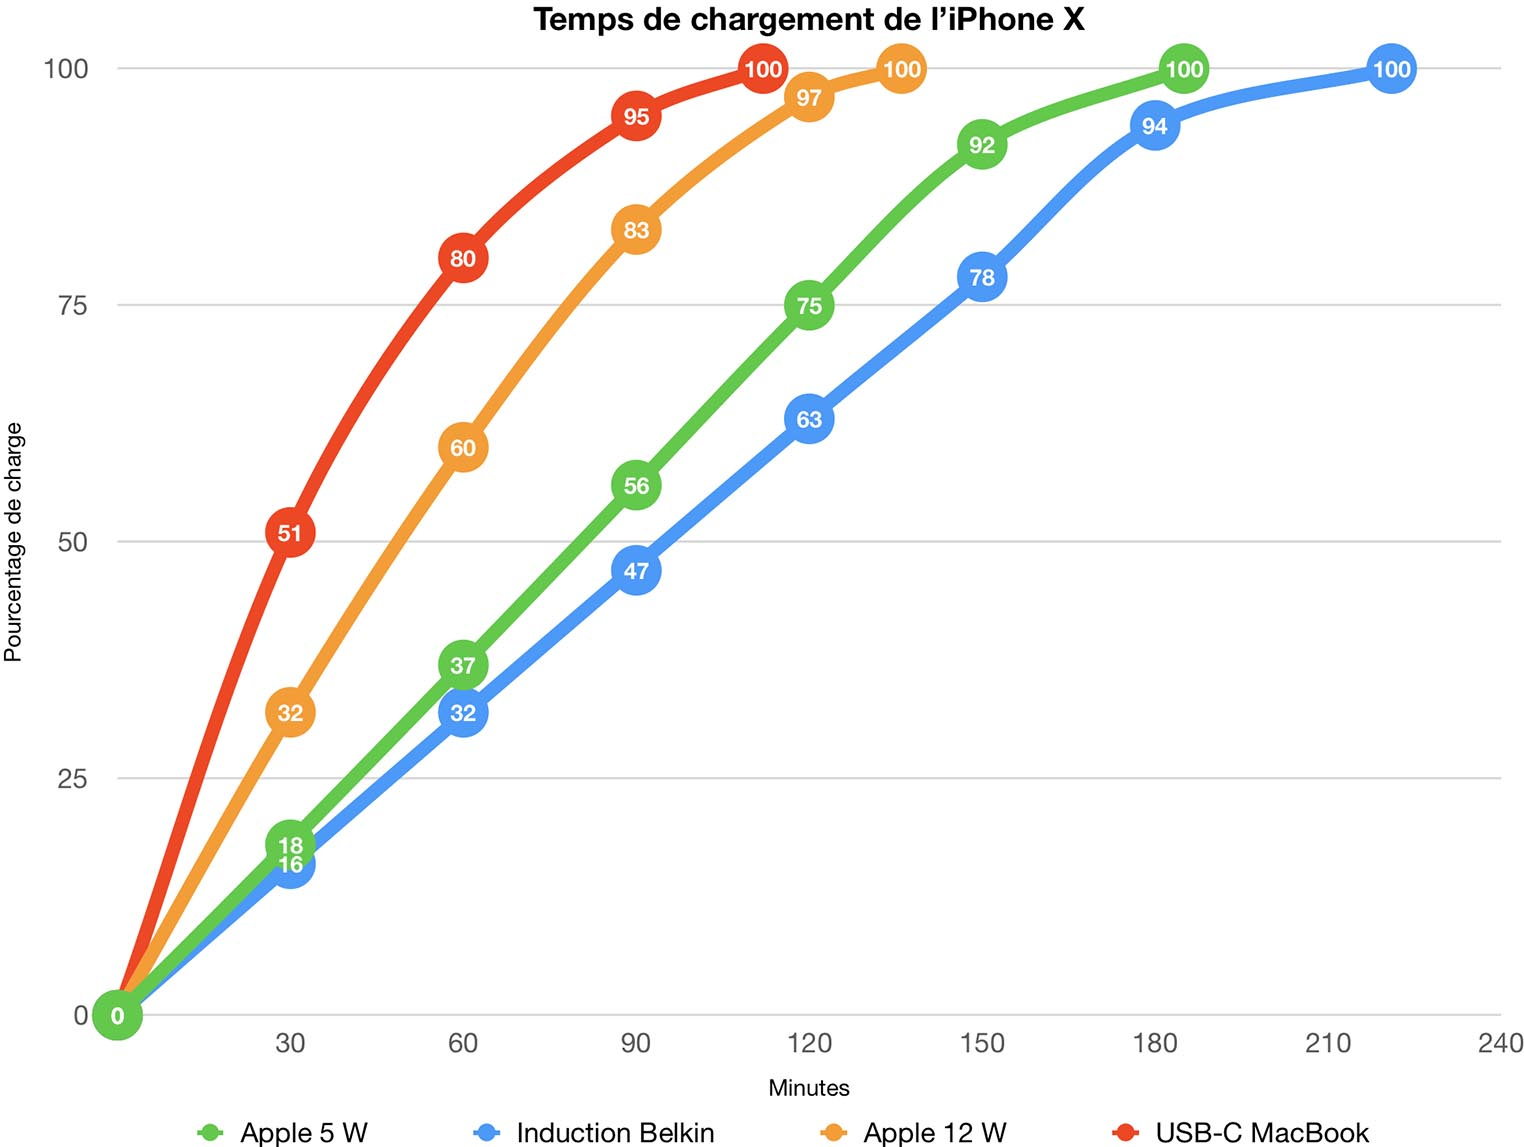 iPhone X temps recharge